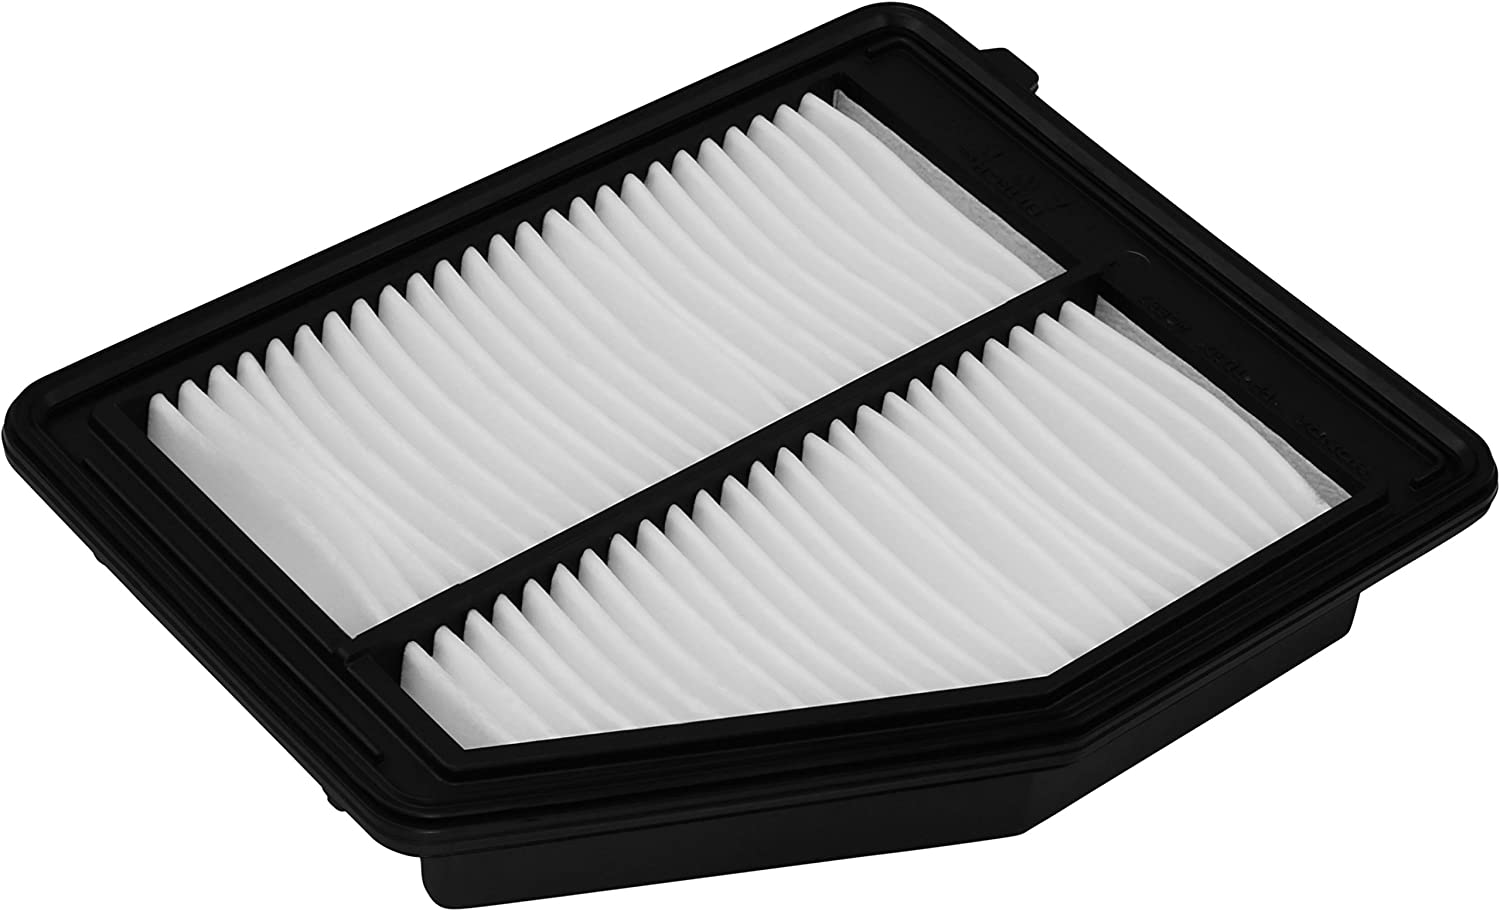 17220-R1A-A01 EPAuto GP213 2013-2015 Honda//Acura Replacement Extra Guard Rigid Panel Engine Air Filter for Civic ILX Base 2.0L 2012-2015